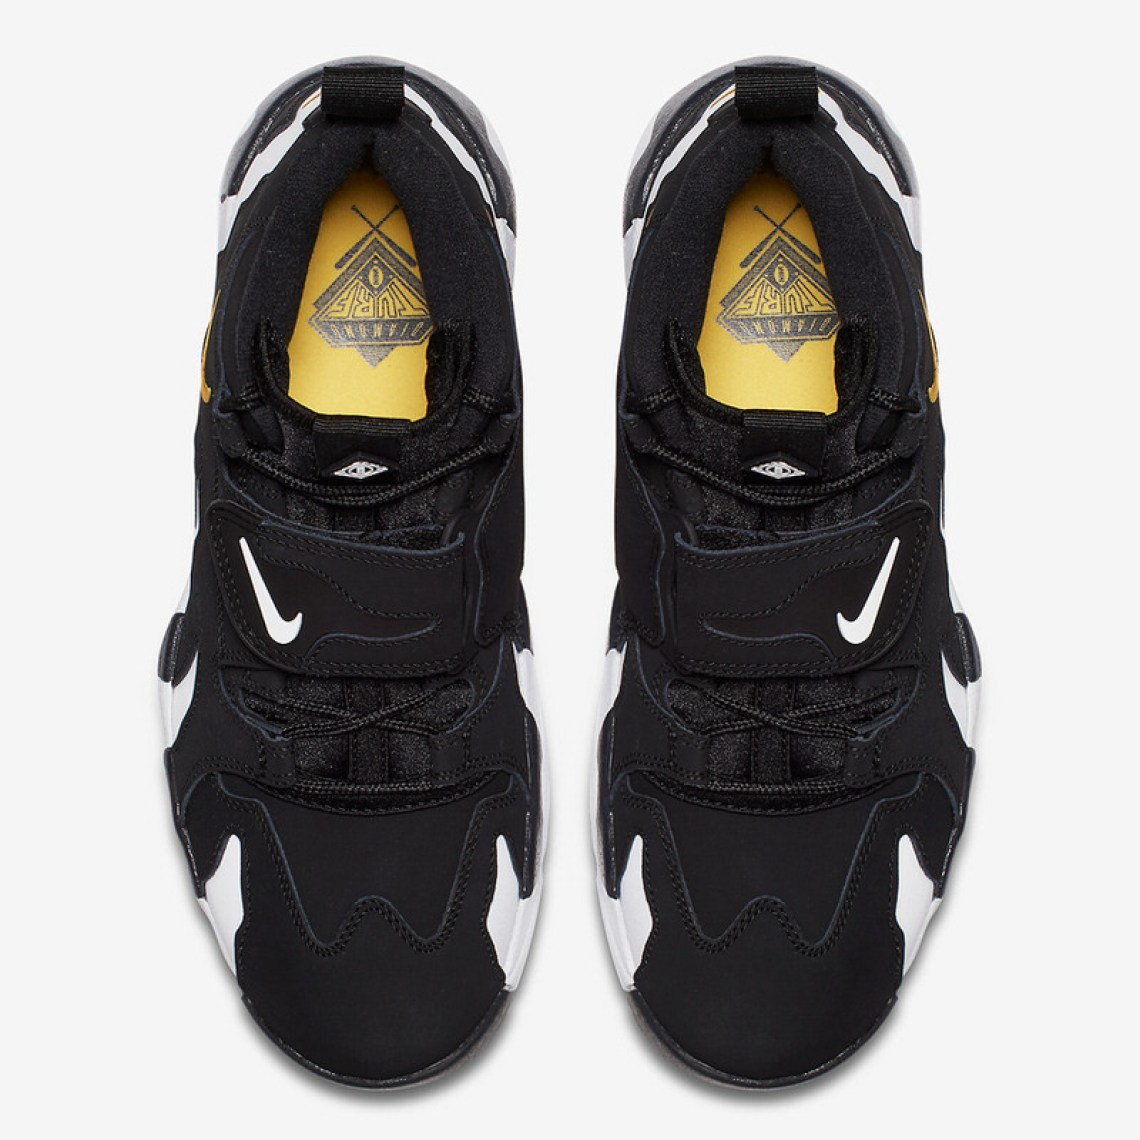 Nike Air DT Max '96 Black/Varsity Maize